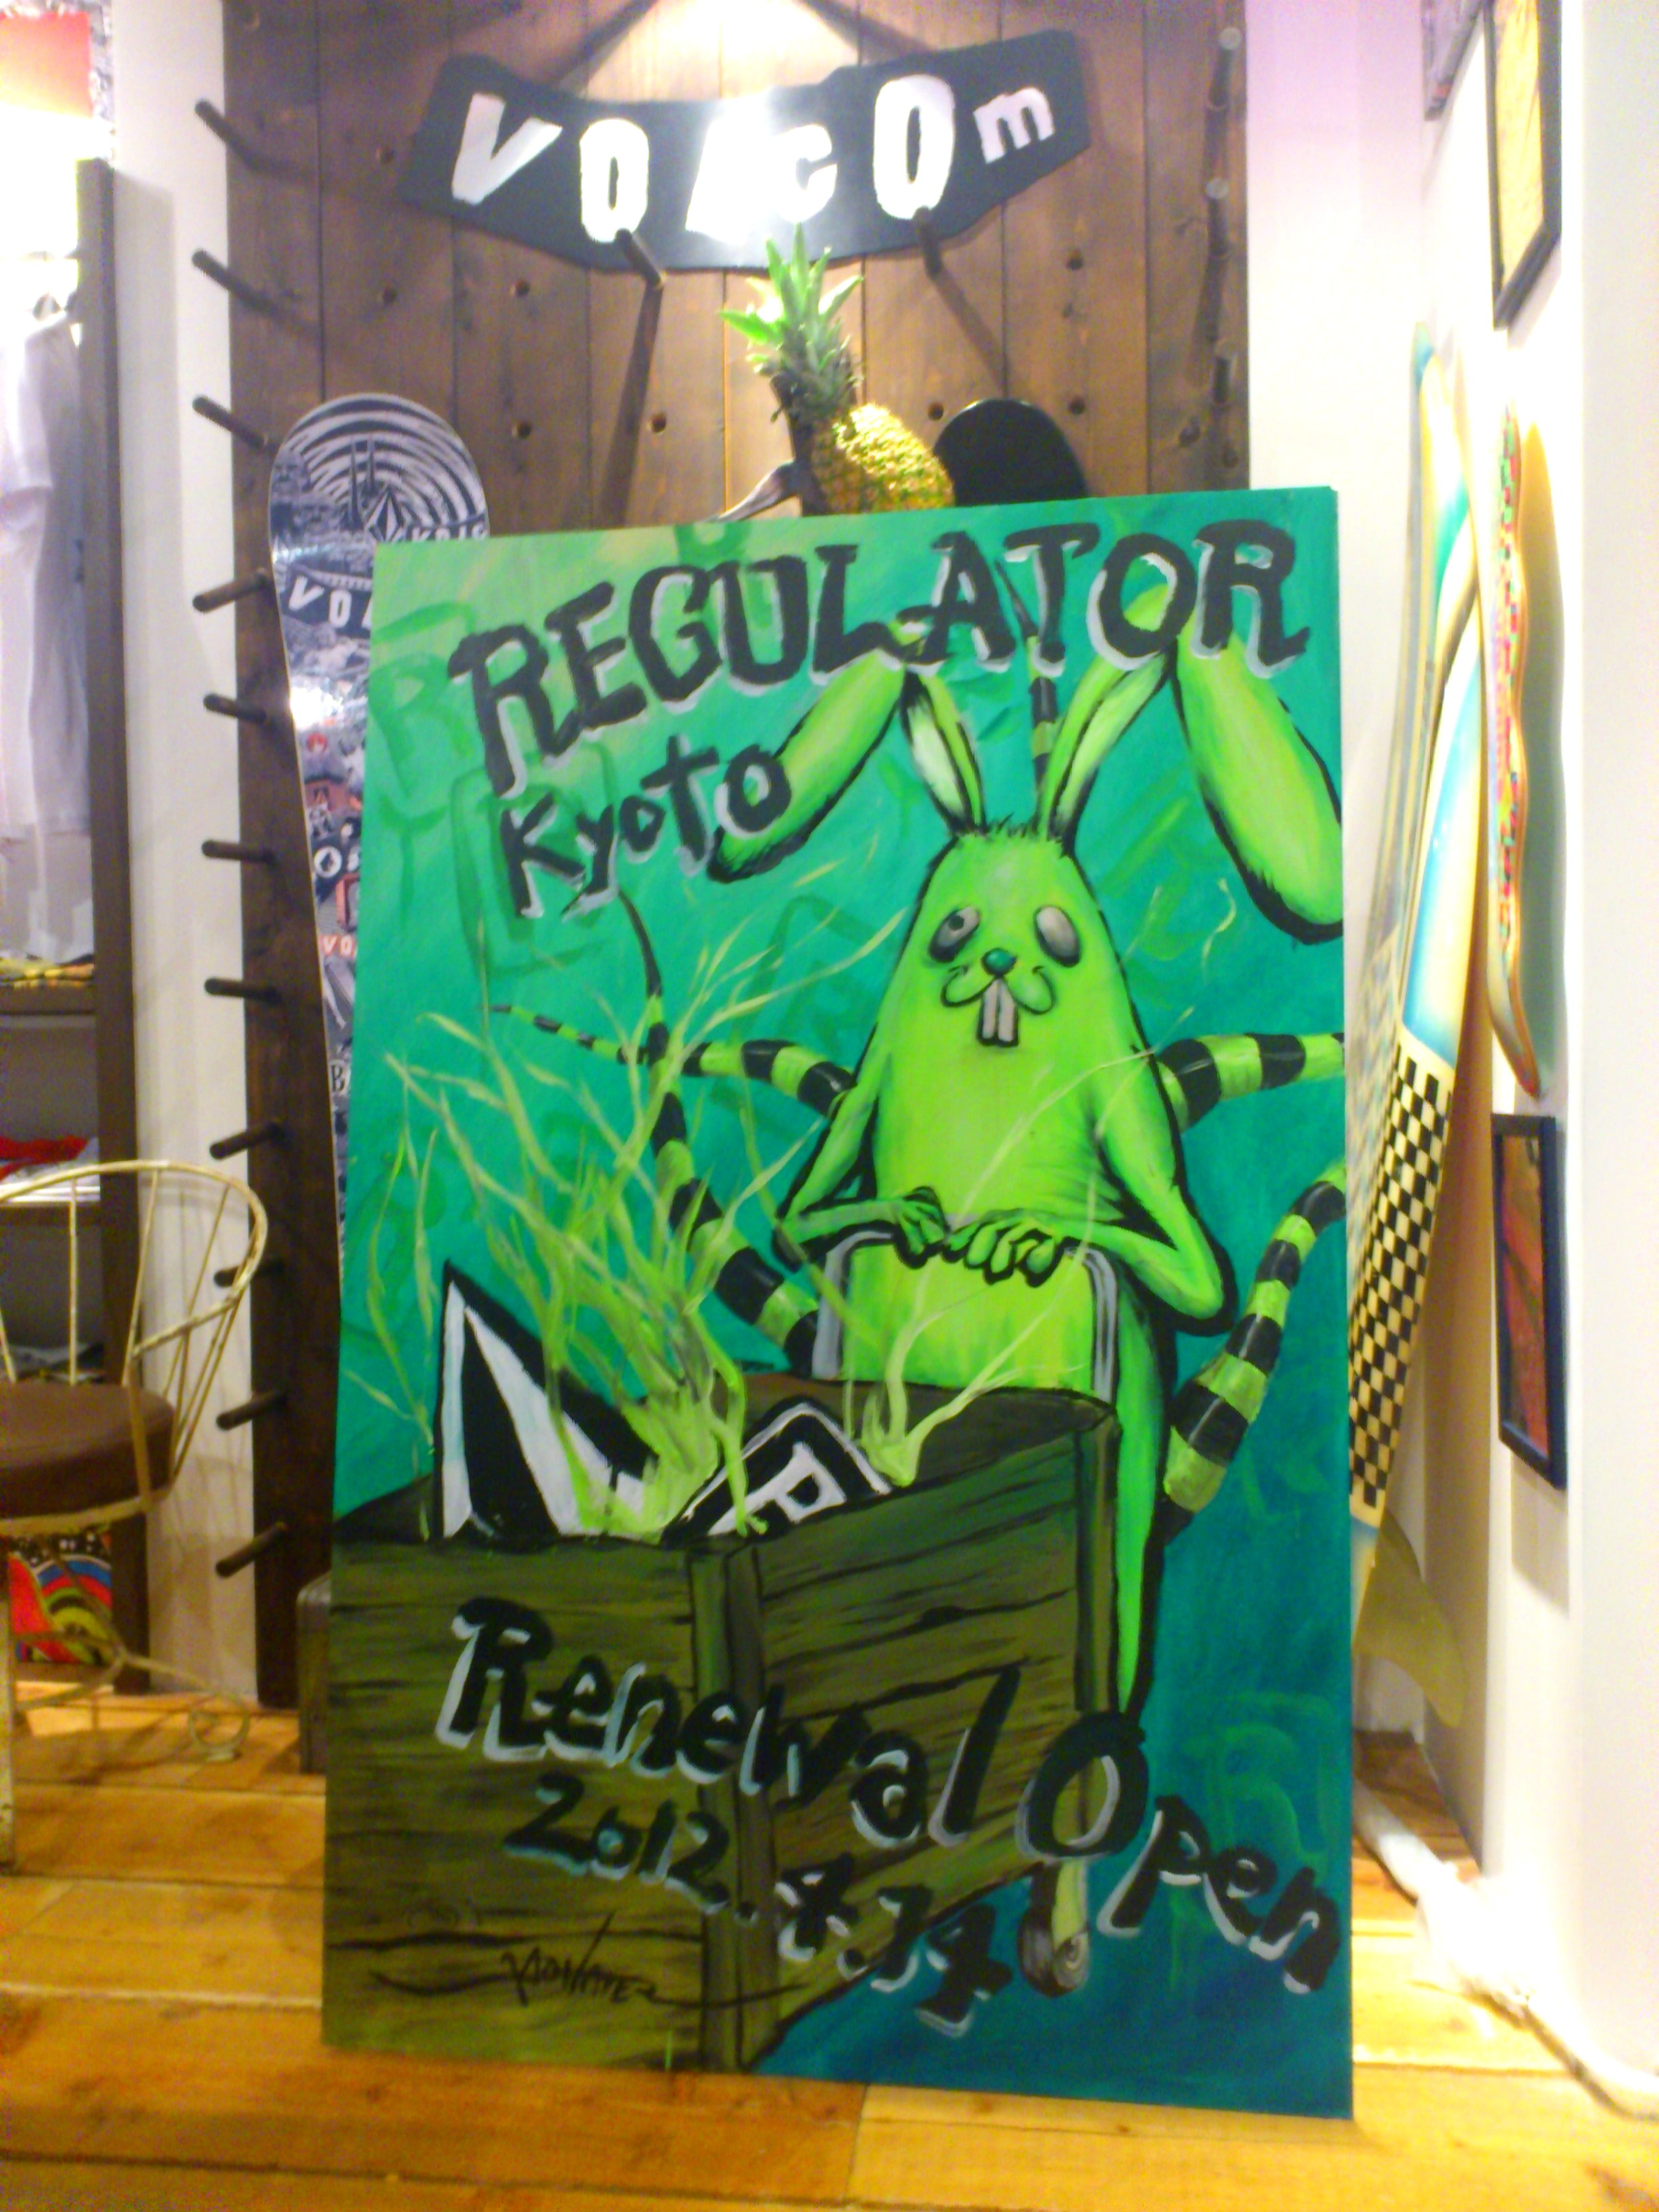 Regulator Reception